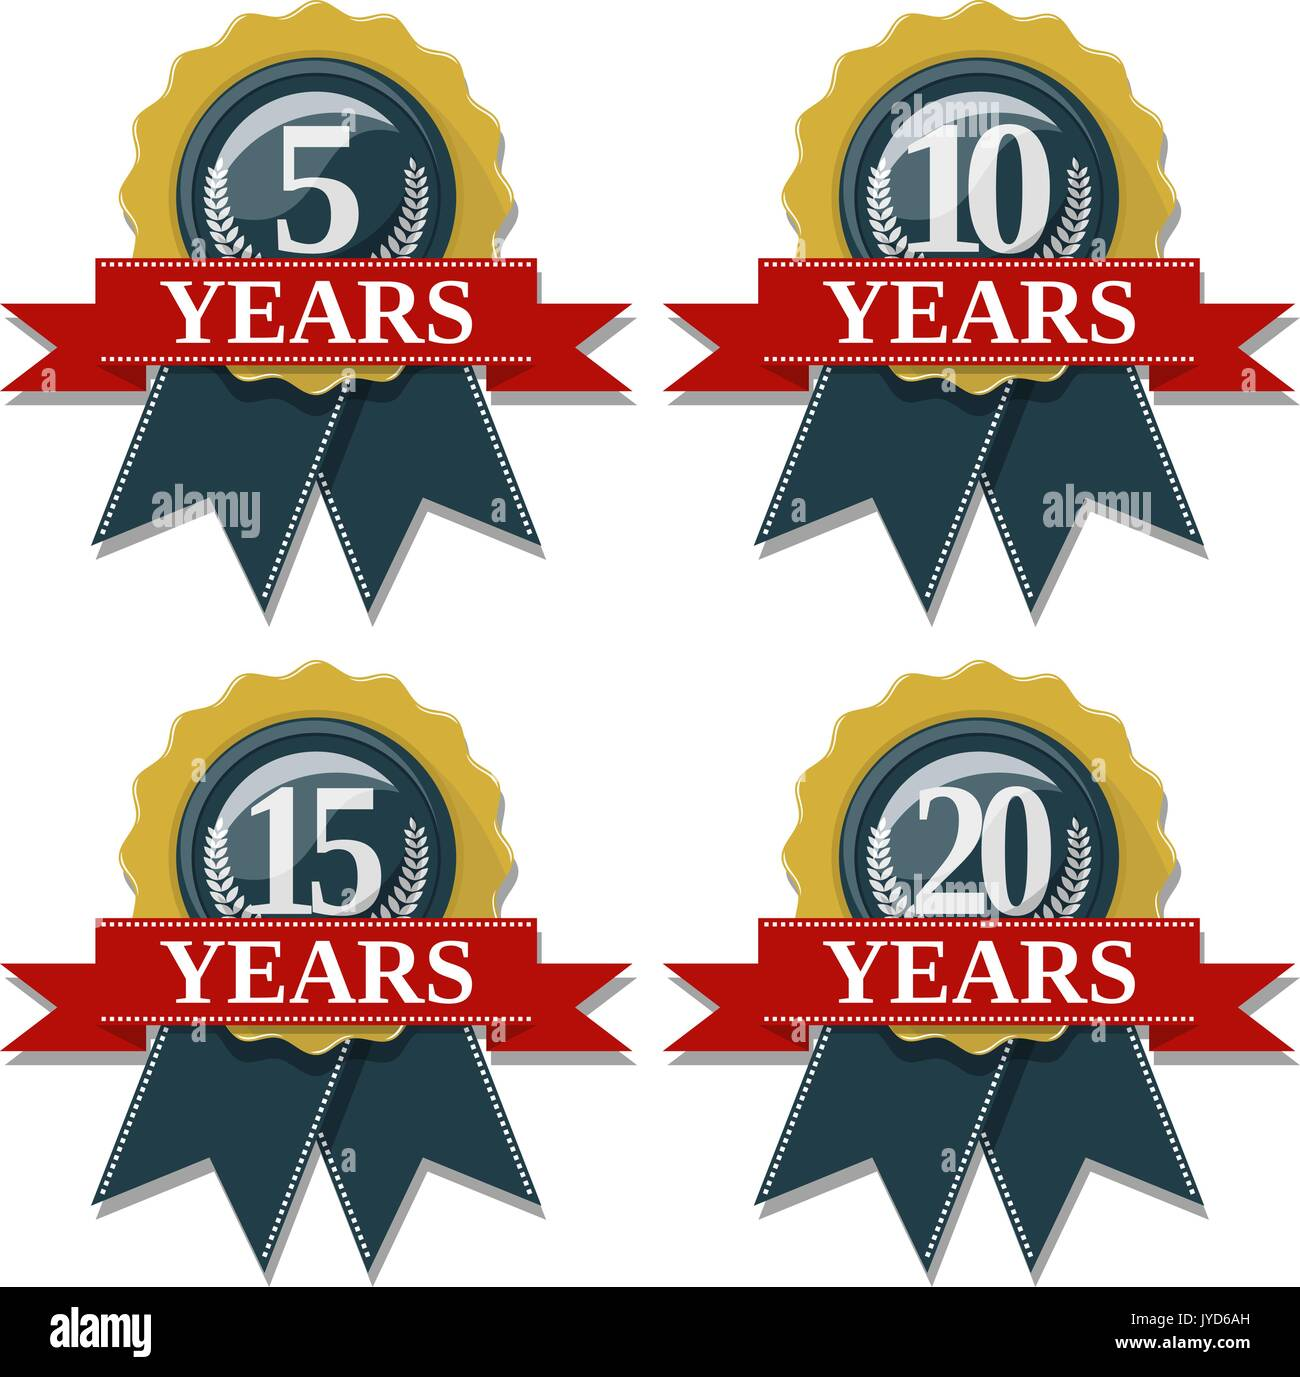 seal and ribbon collection commemorating 5 10 15 20 years,  in vector format very easy to edit, individual objects, solid colors, no gradients - Stock Vector